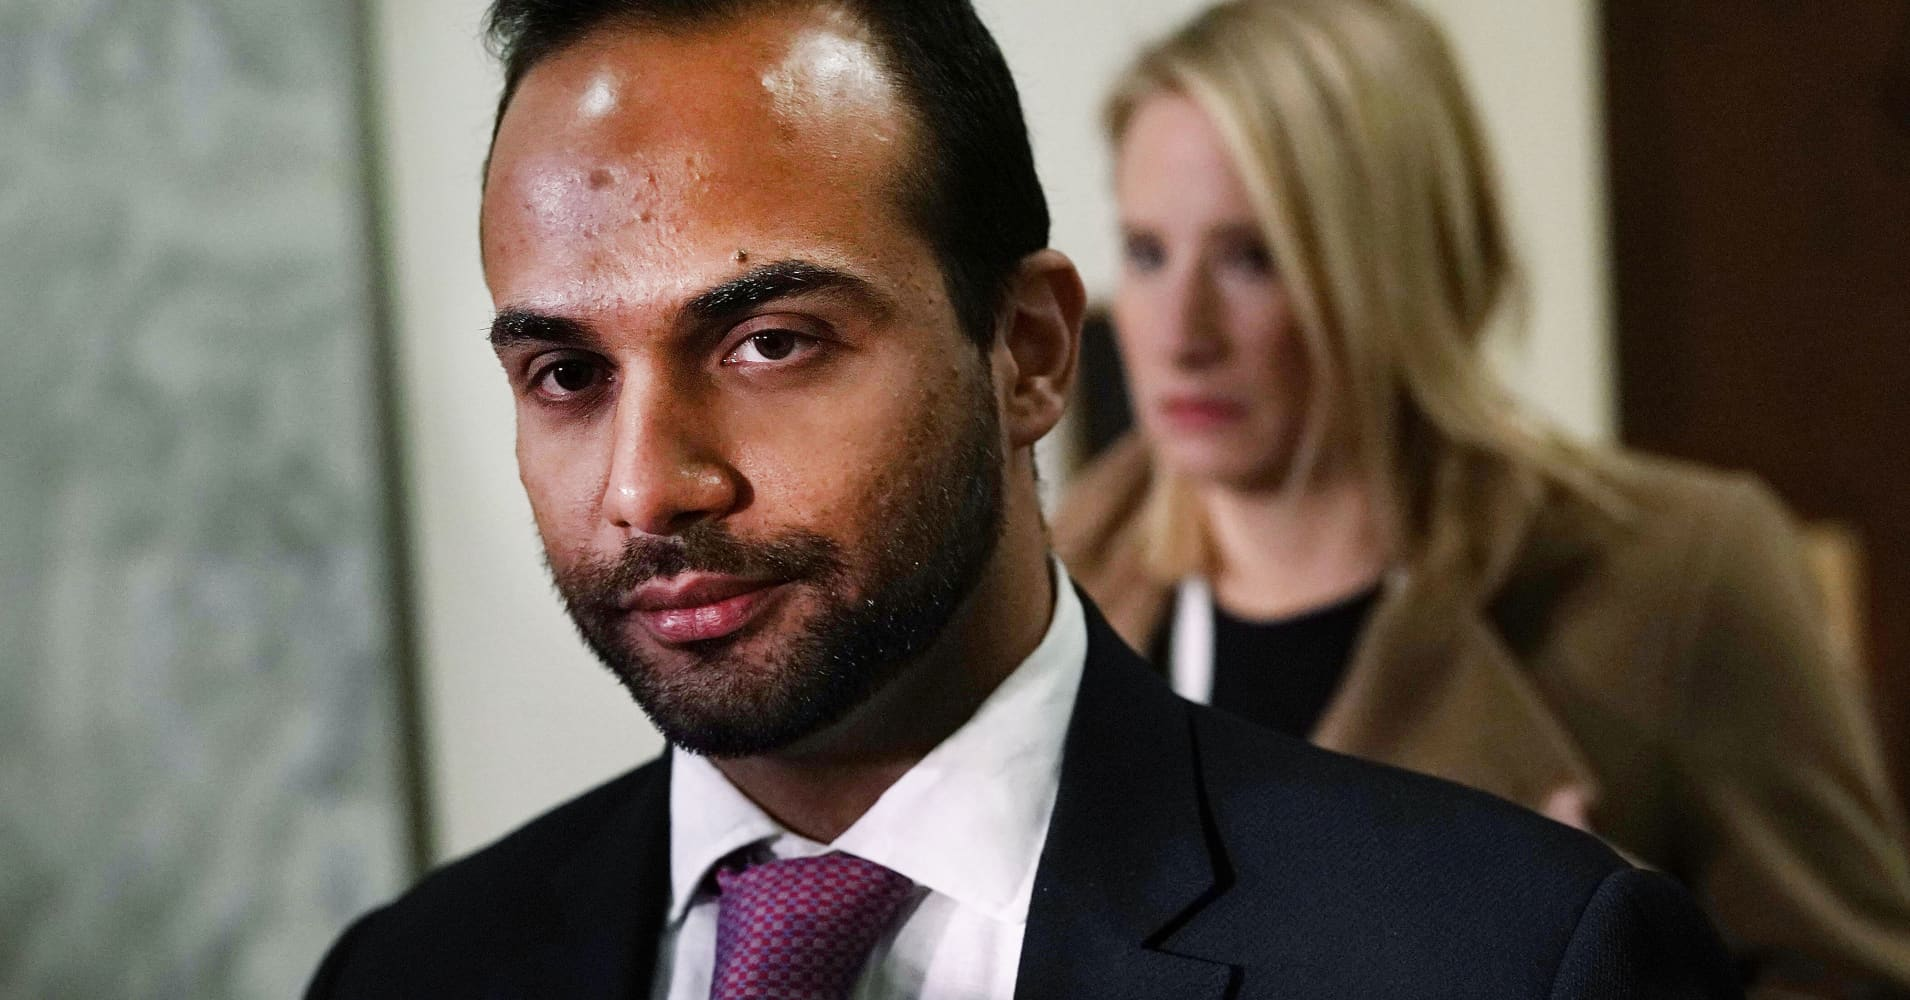 Former Trump campaign aide George Papadopoulos asked the president for a pardon